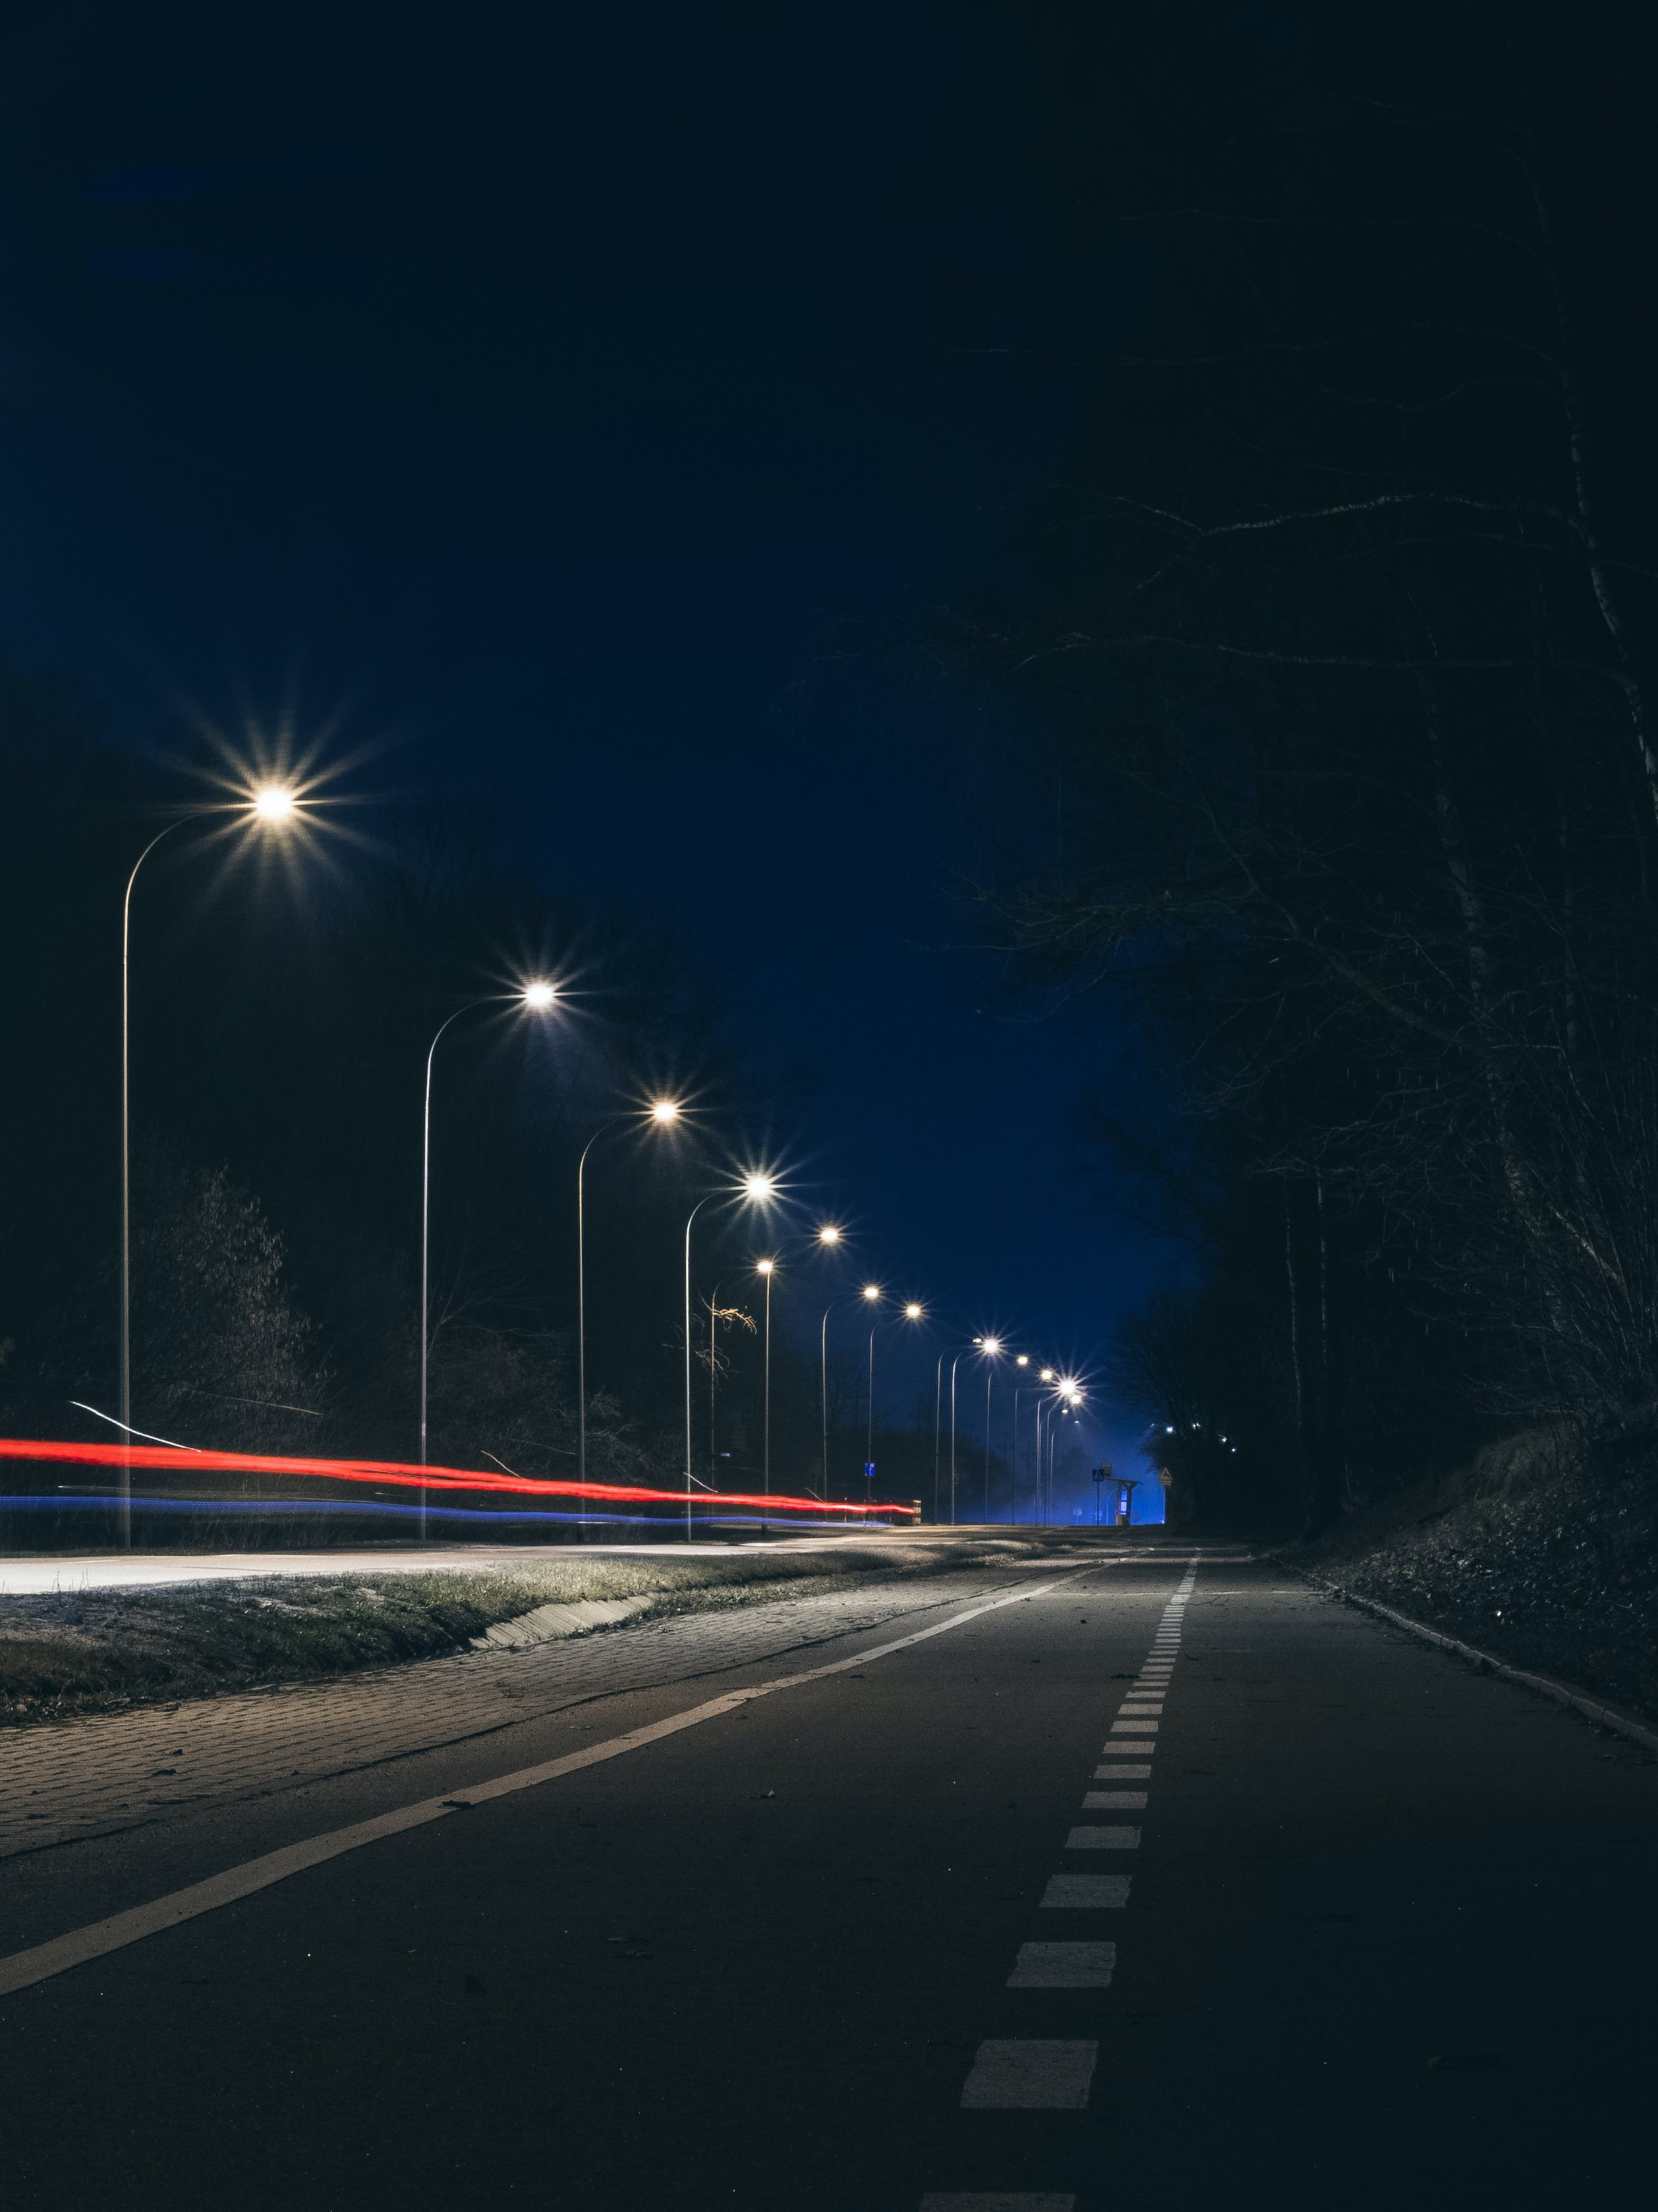 Road Near Post Lamp at Night Time